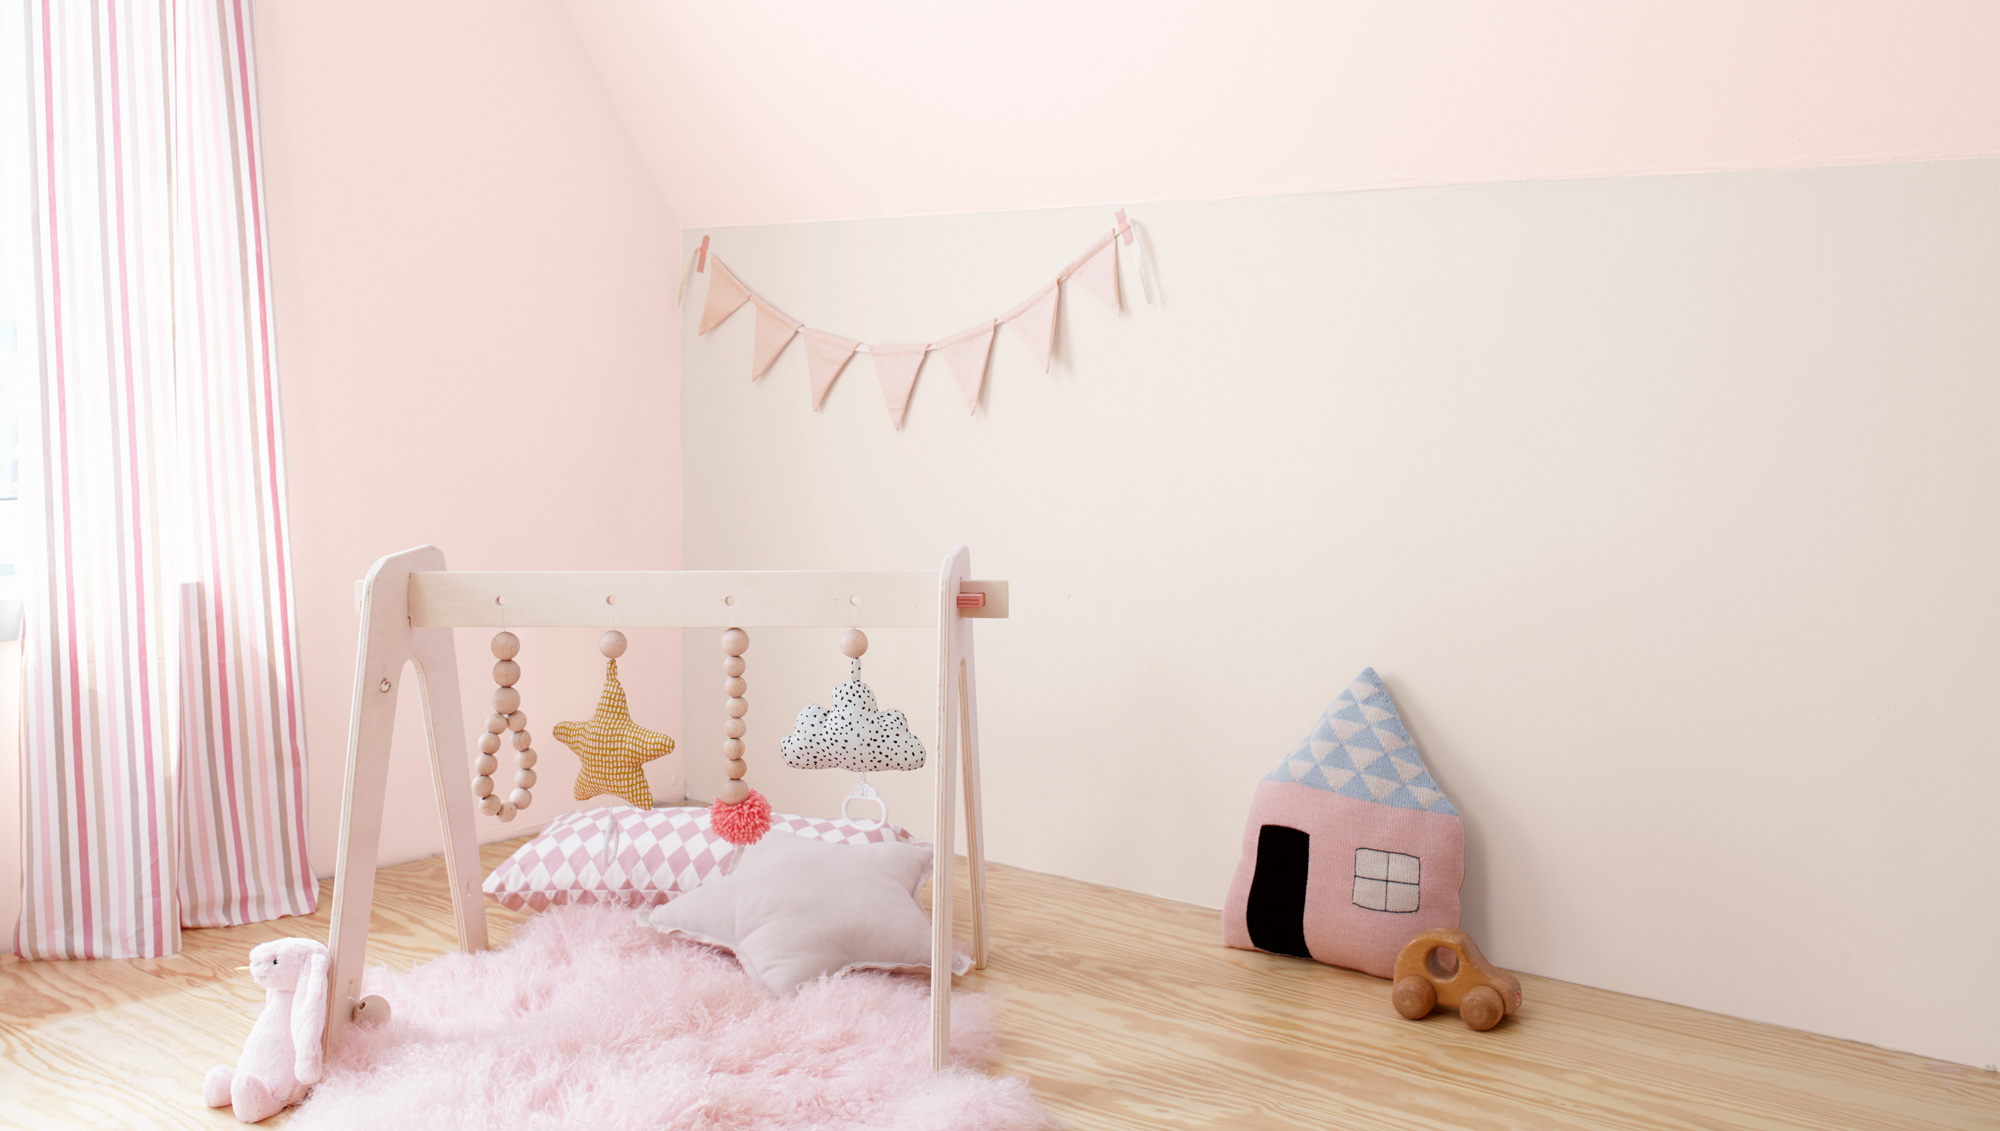 Full Size of Wandfarbe Rosa Farbe Frs Babyzimmer Küche Wohnzimmer Wandfarbe Rosa